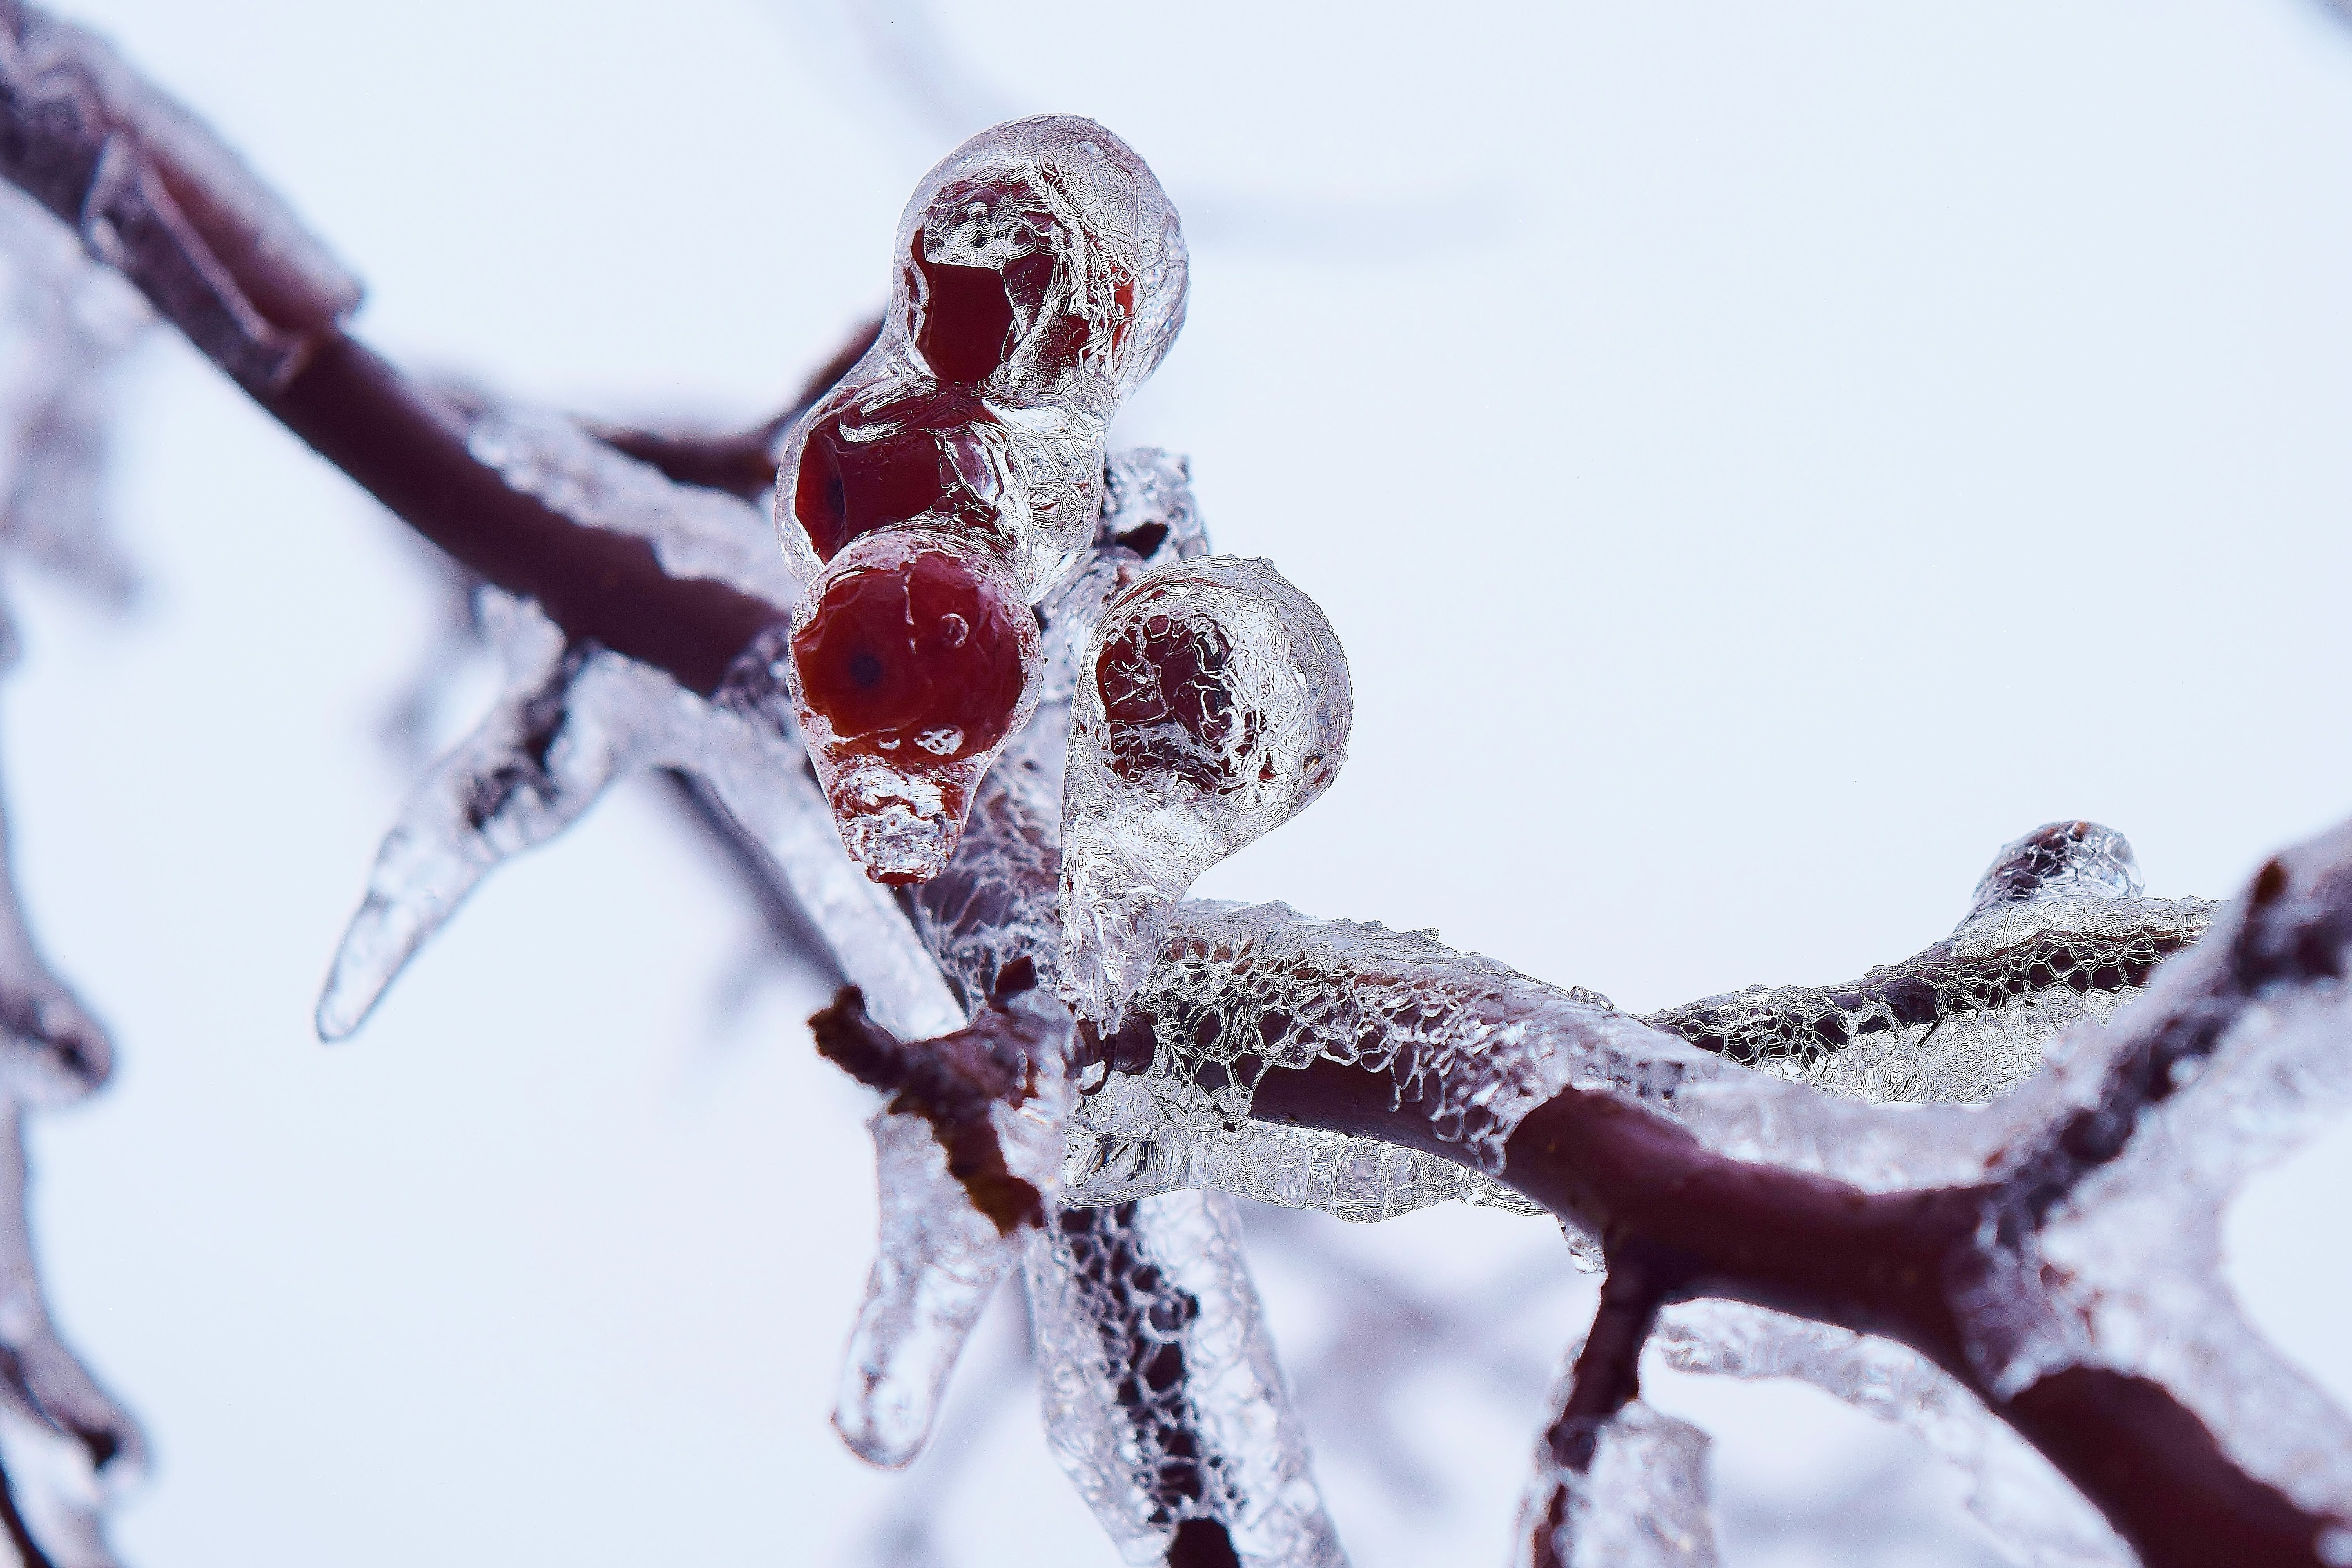 Free stock photo of icy branches, red berries, snow tree branches, winter branches